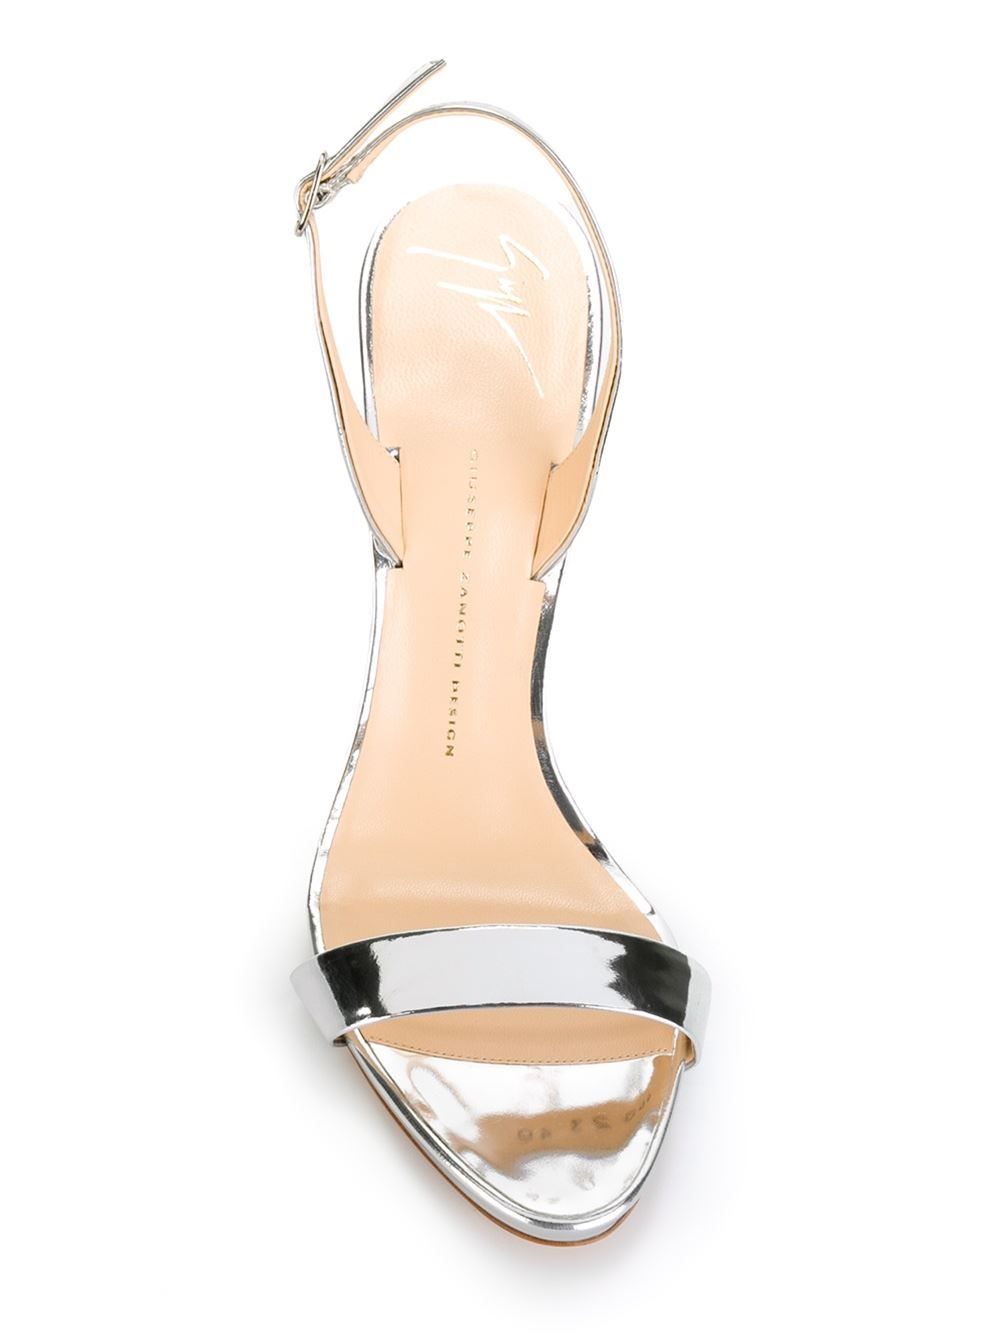 f9a495f8b8bb Giuseppe Zanotti Design Slingback Metallic Sandals - Julian Fashion -  Farfetch.com